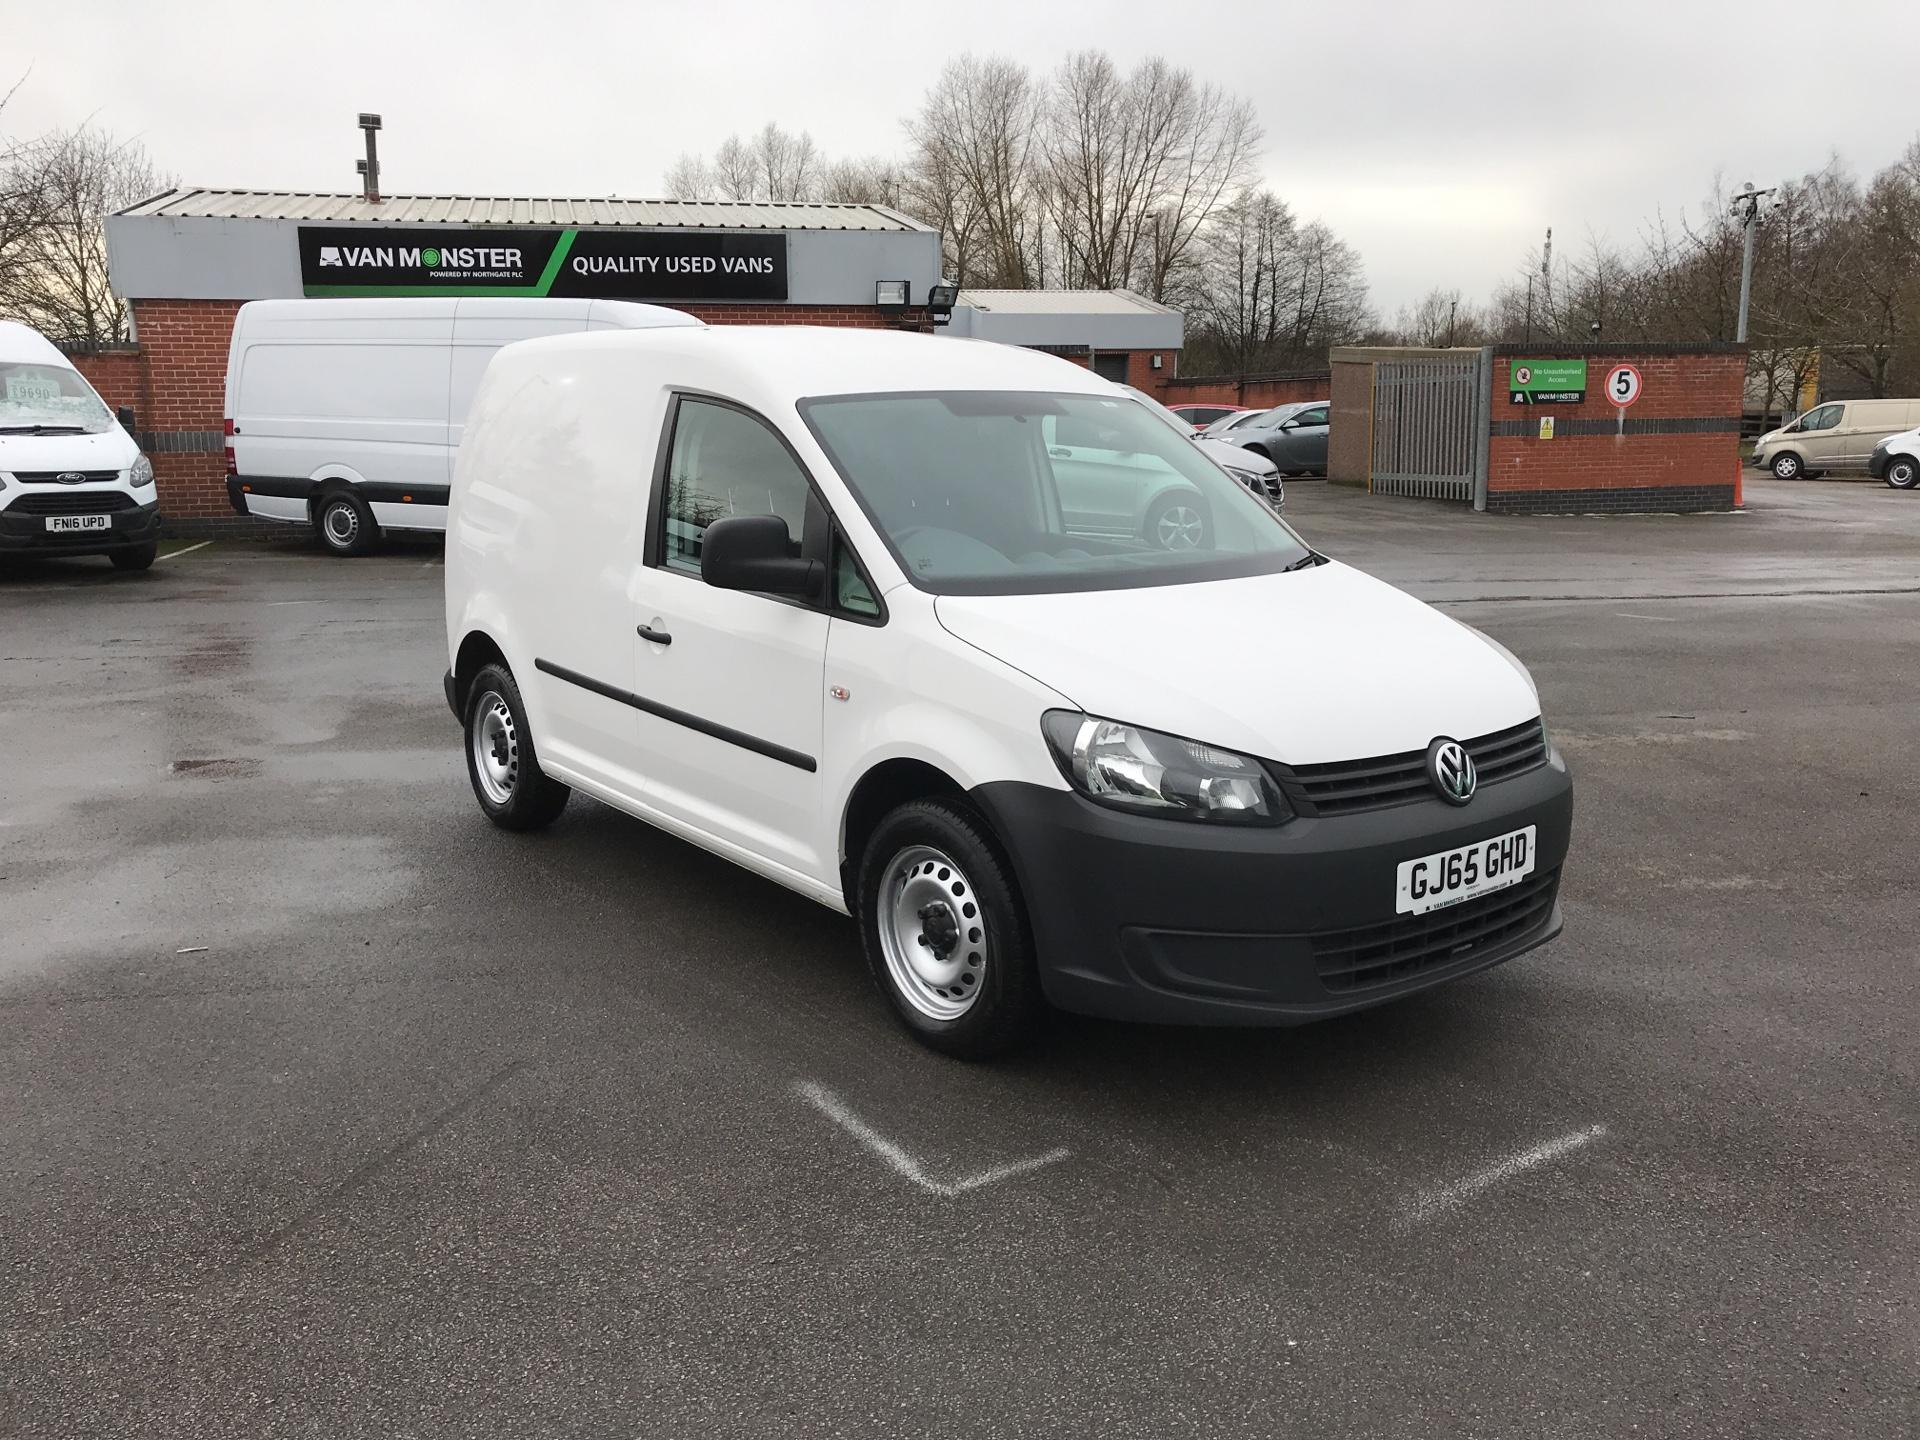 2015 Volkswagen Caddy  1.6 102PS STARTLINE EURO 5 (GJ65GHD)